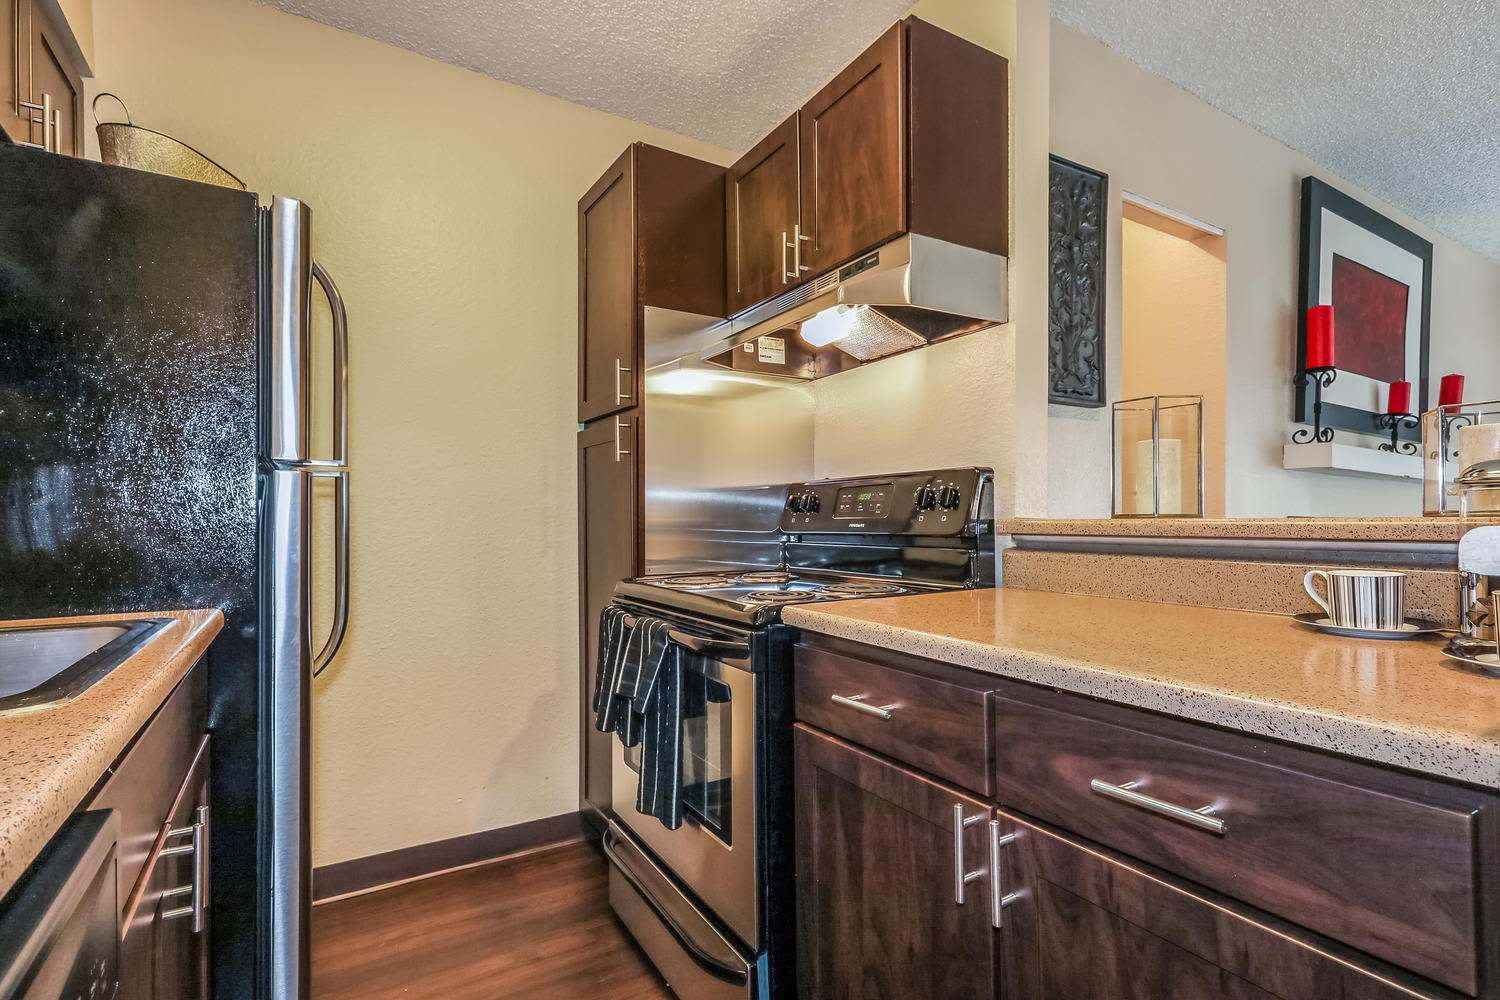 Kitchen at City Center Station Apartments in Aurora